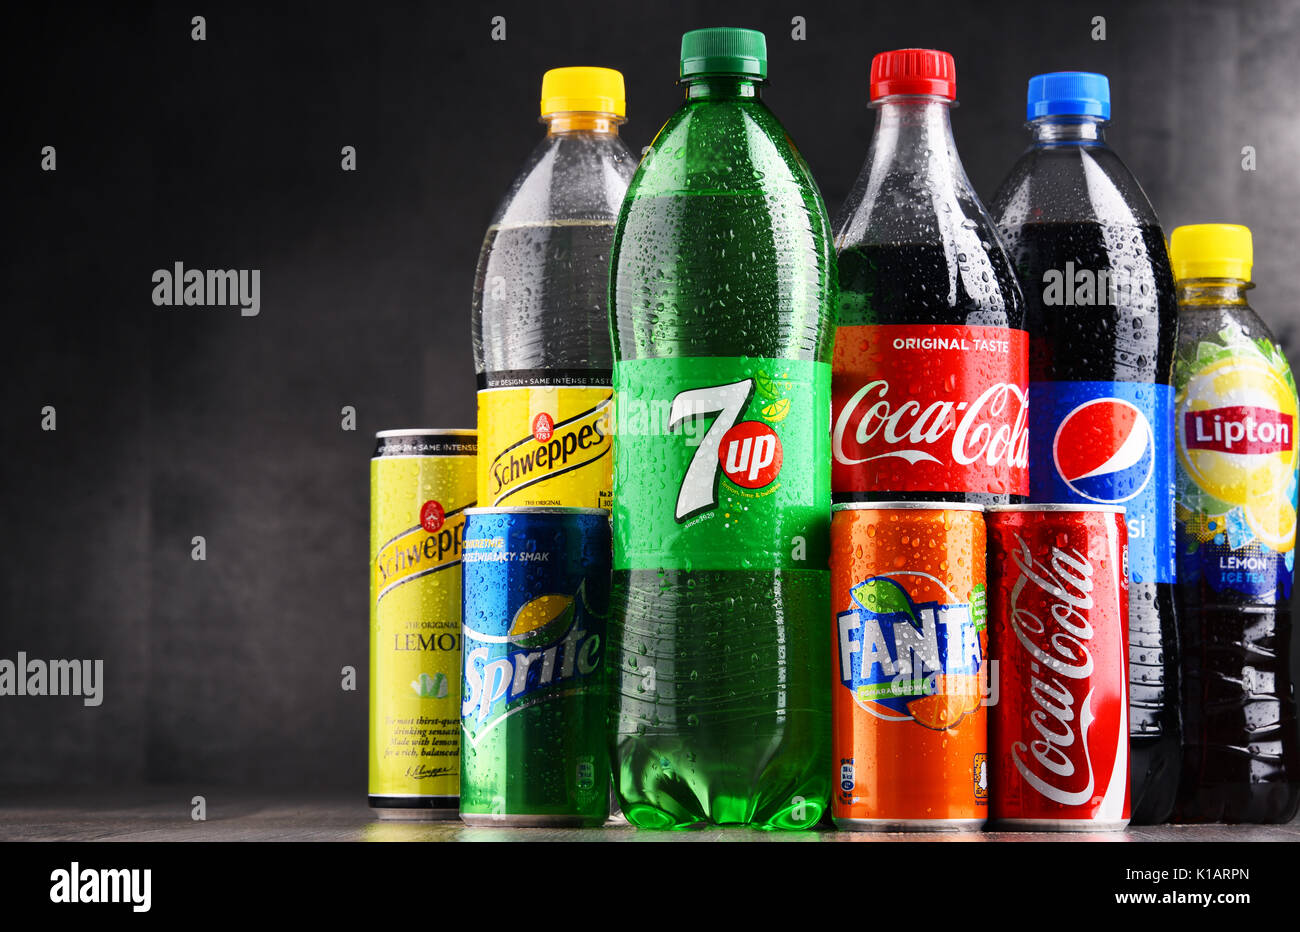 Soft Drinks Global Market, Industry Analysis, Growth Trends, Opportunity and Forecast 2018 to 2023